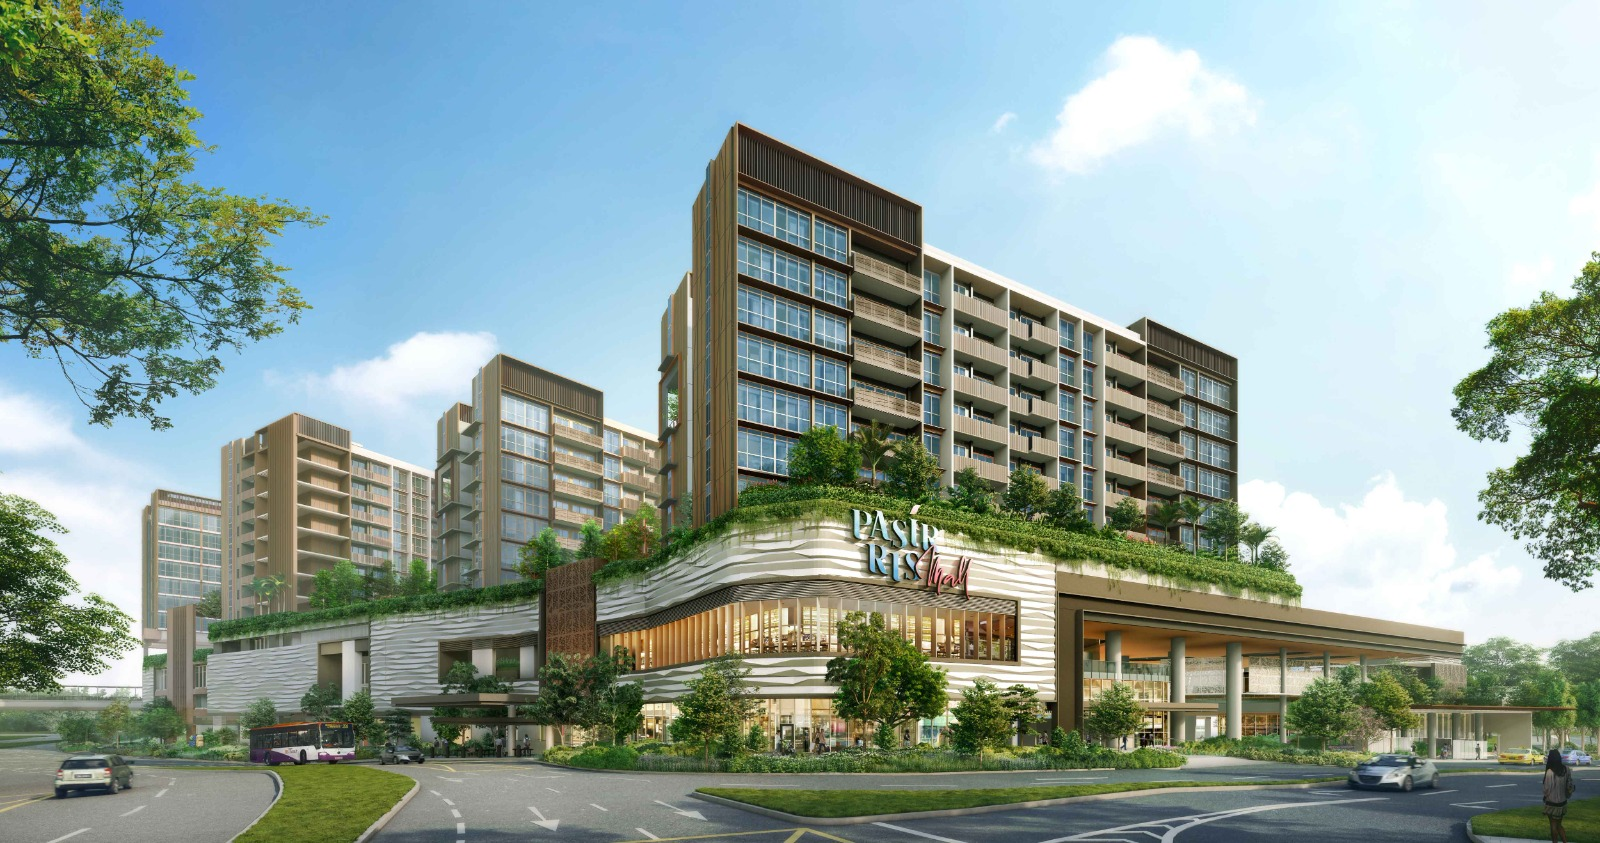 Pasir Ris 8 Integrated Mall - Day View